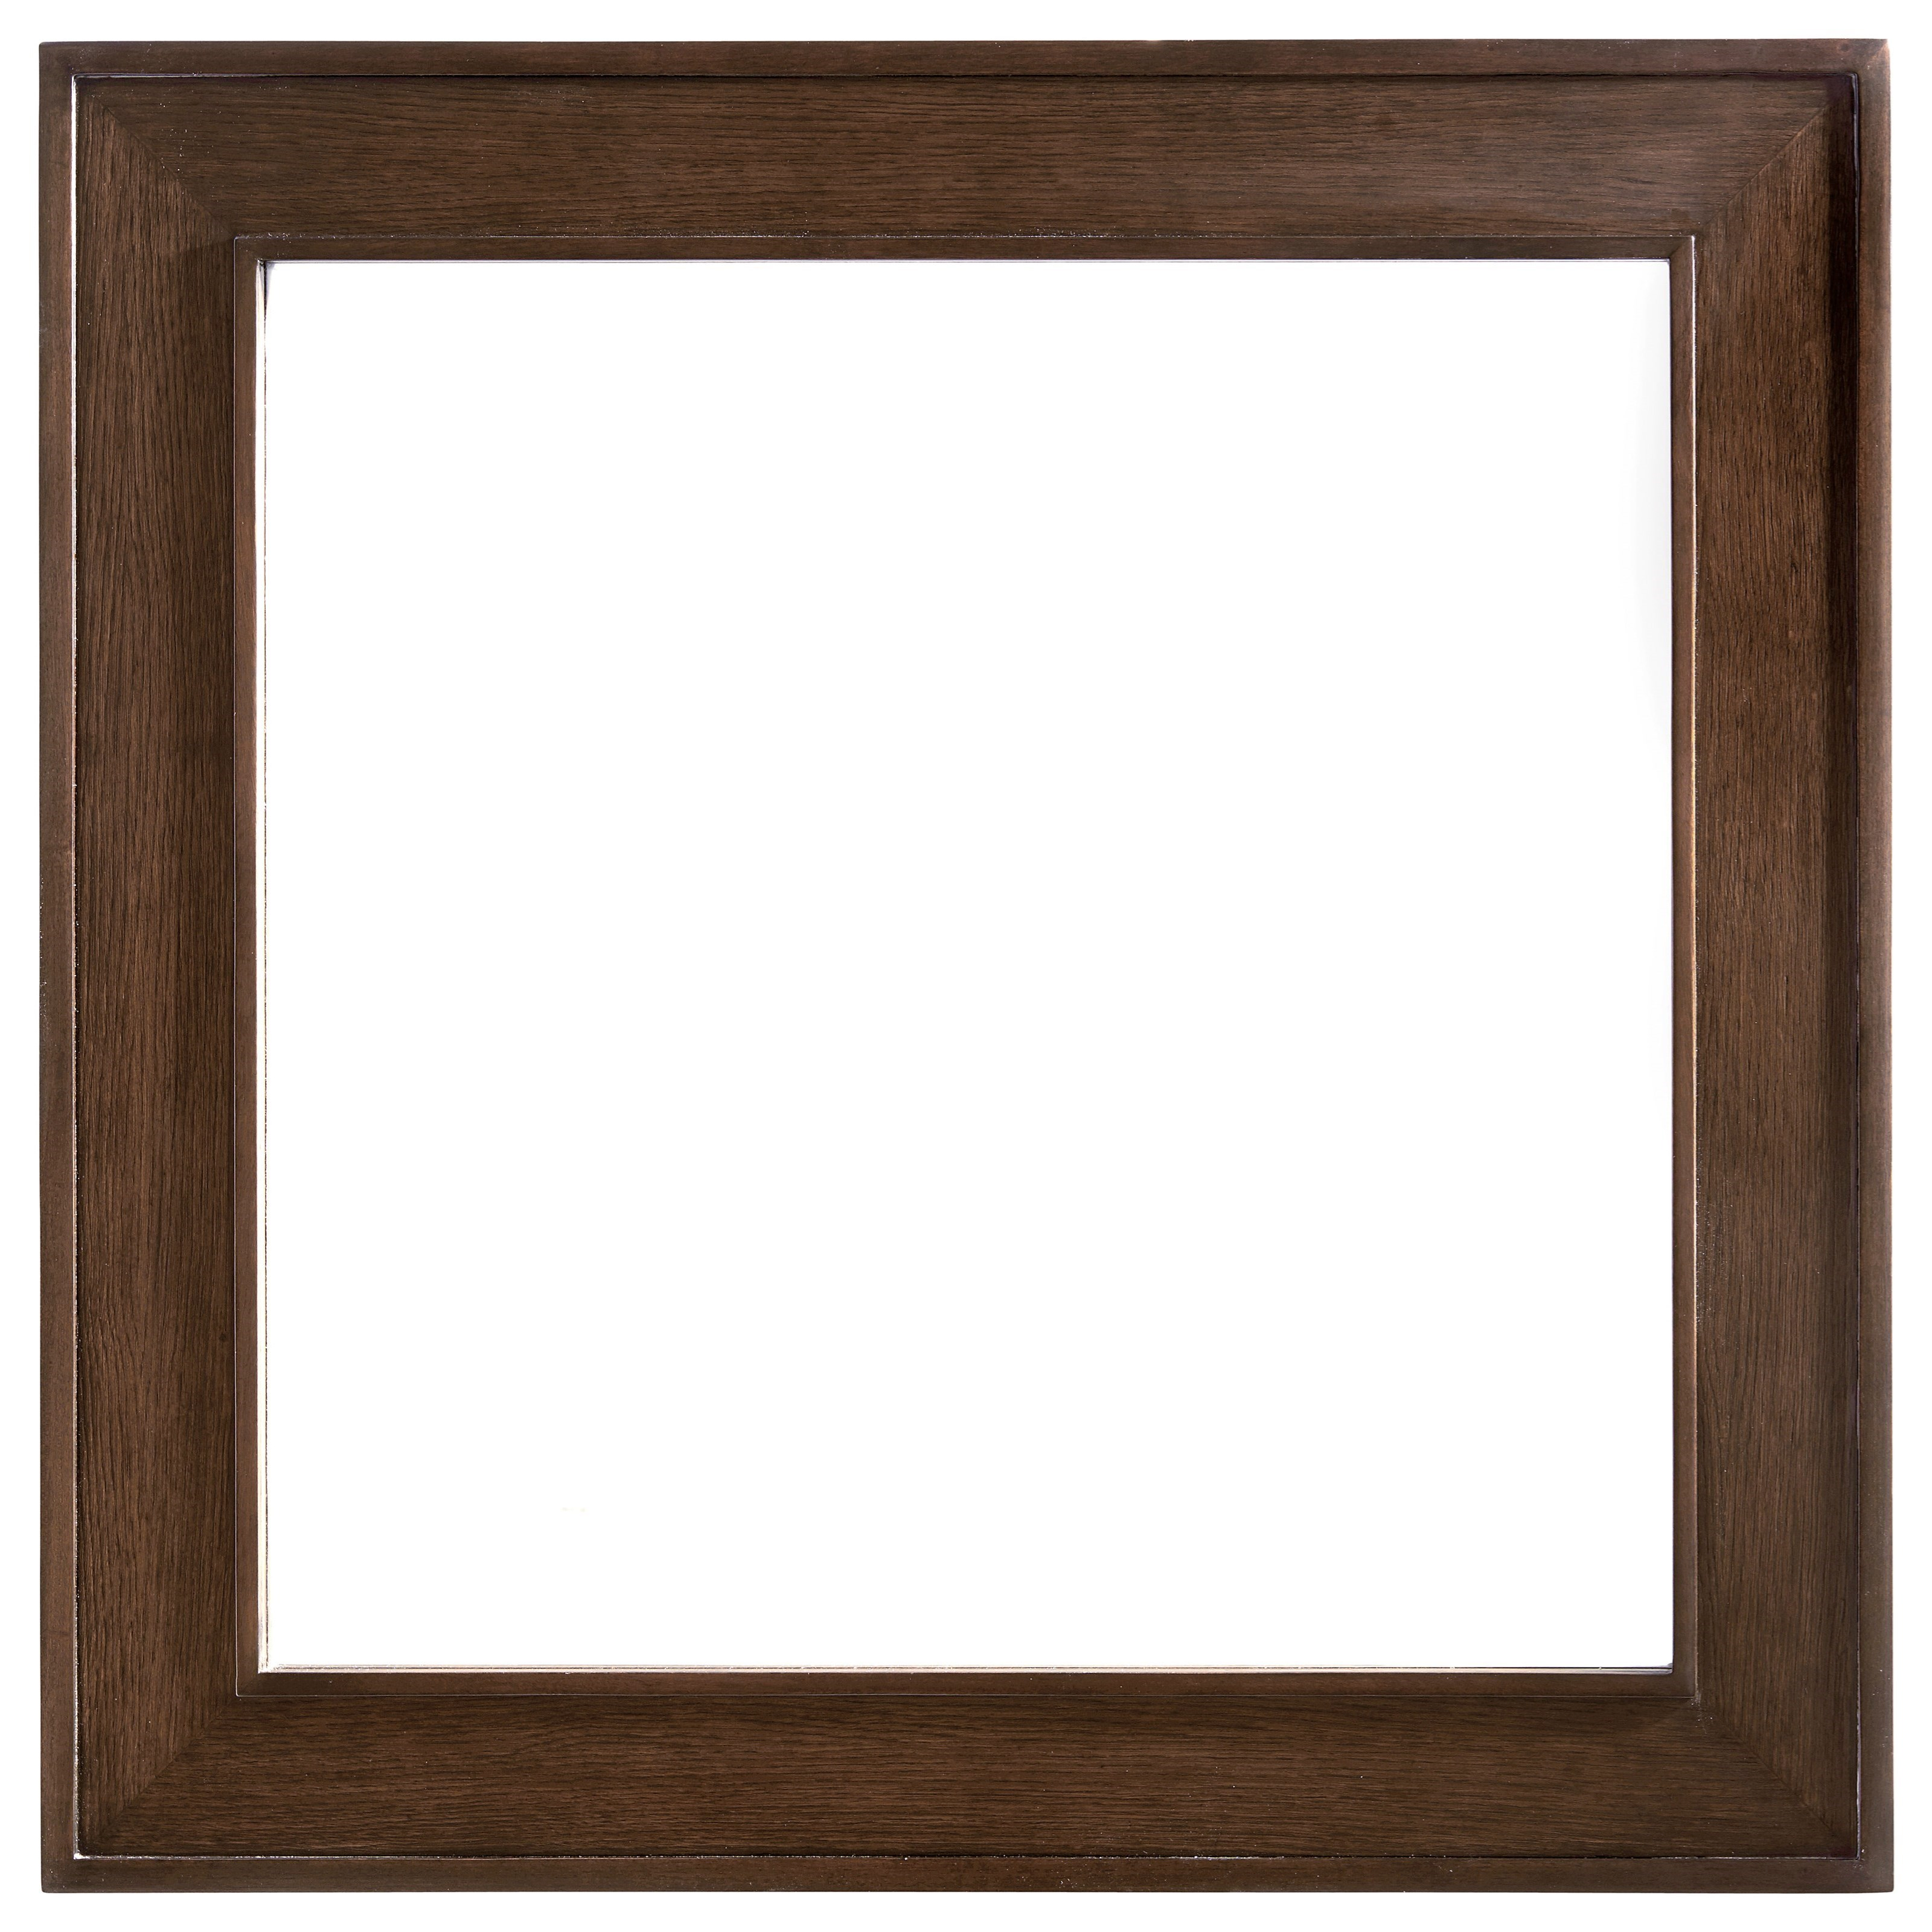 Zavala Gallerie Square Mirror by Lexington at Story & Lee Furniture